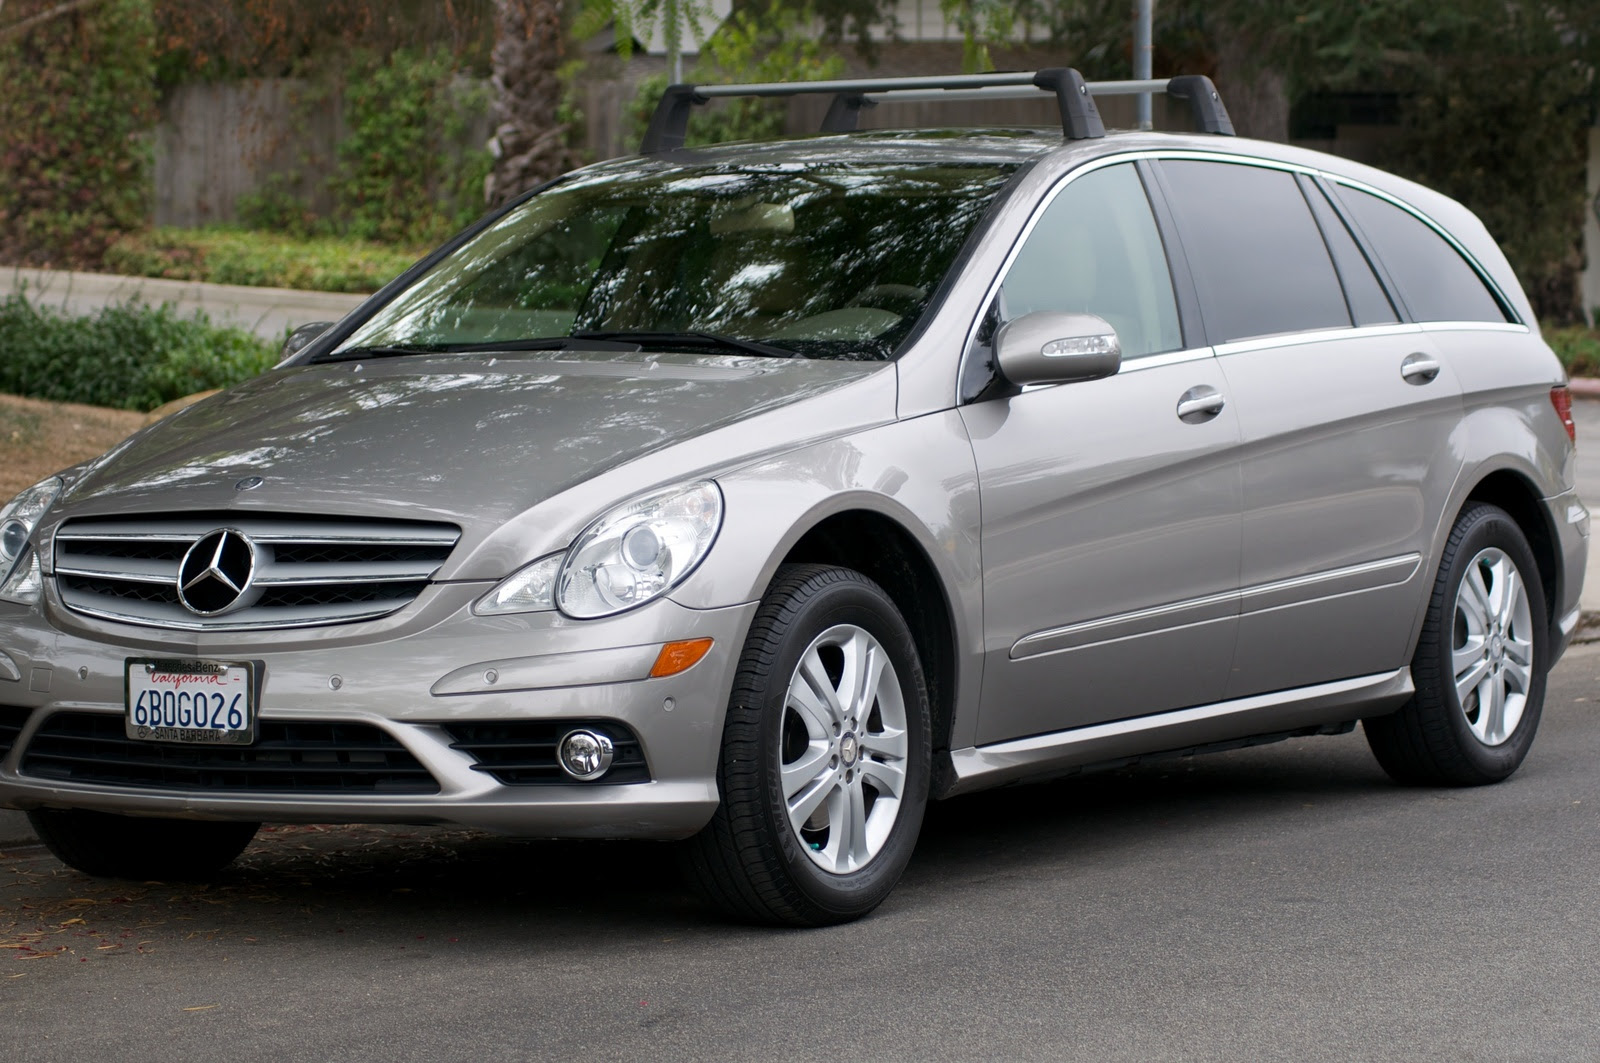 2008 Mercedes-Benz R-Class - Information and photos - Zomb ...